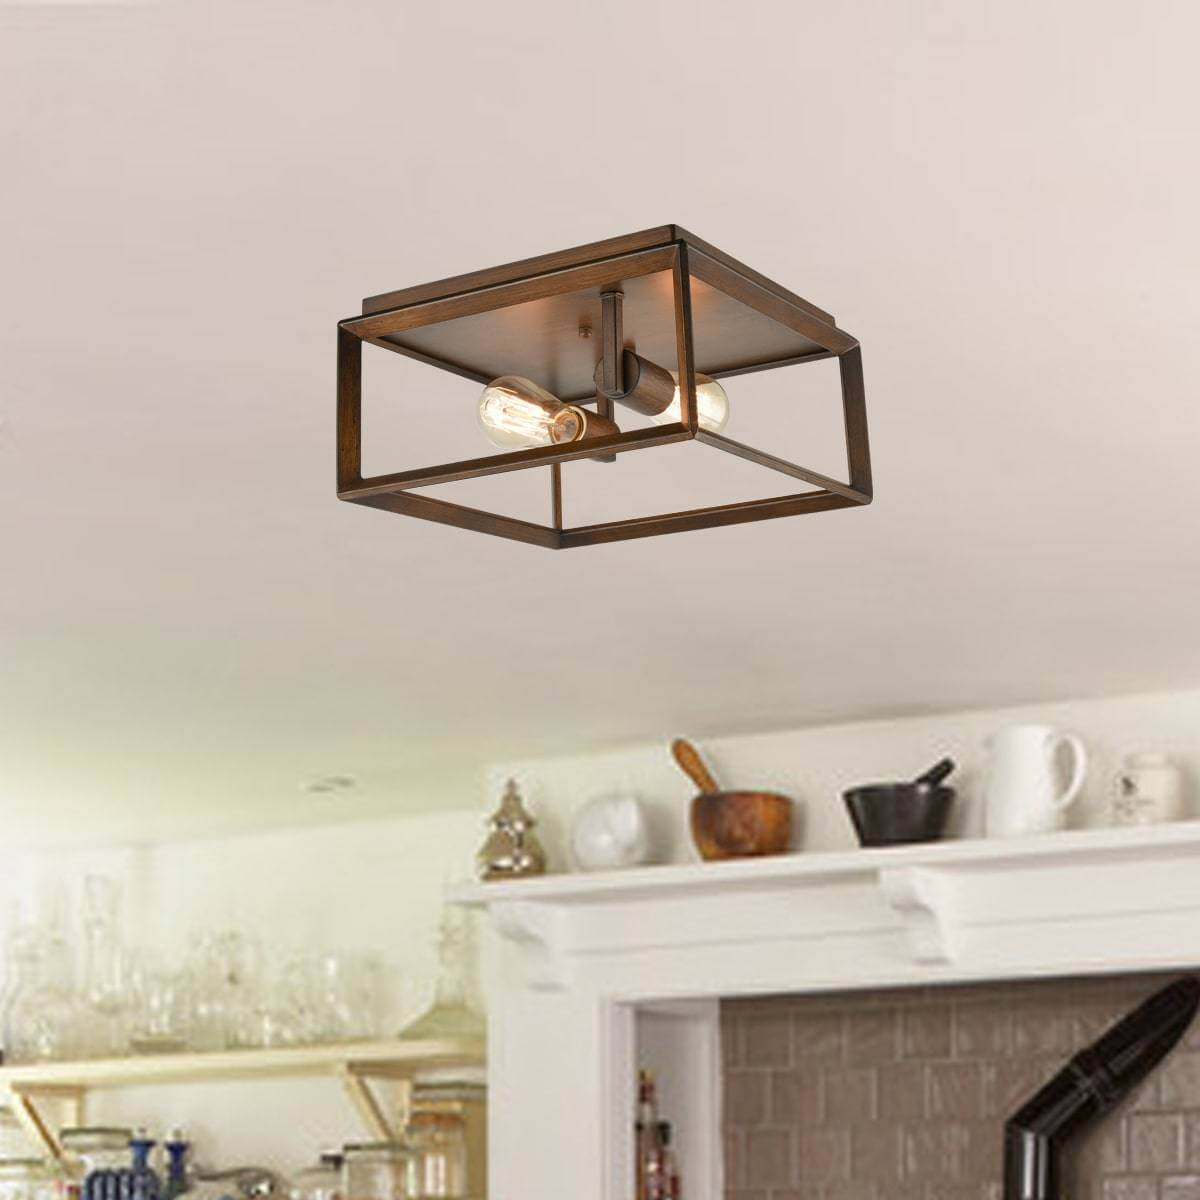 Rustic Square Cage Flush Mount Ceiling Light-2 Light